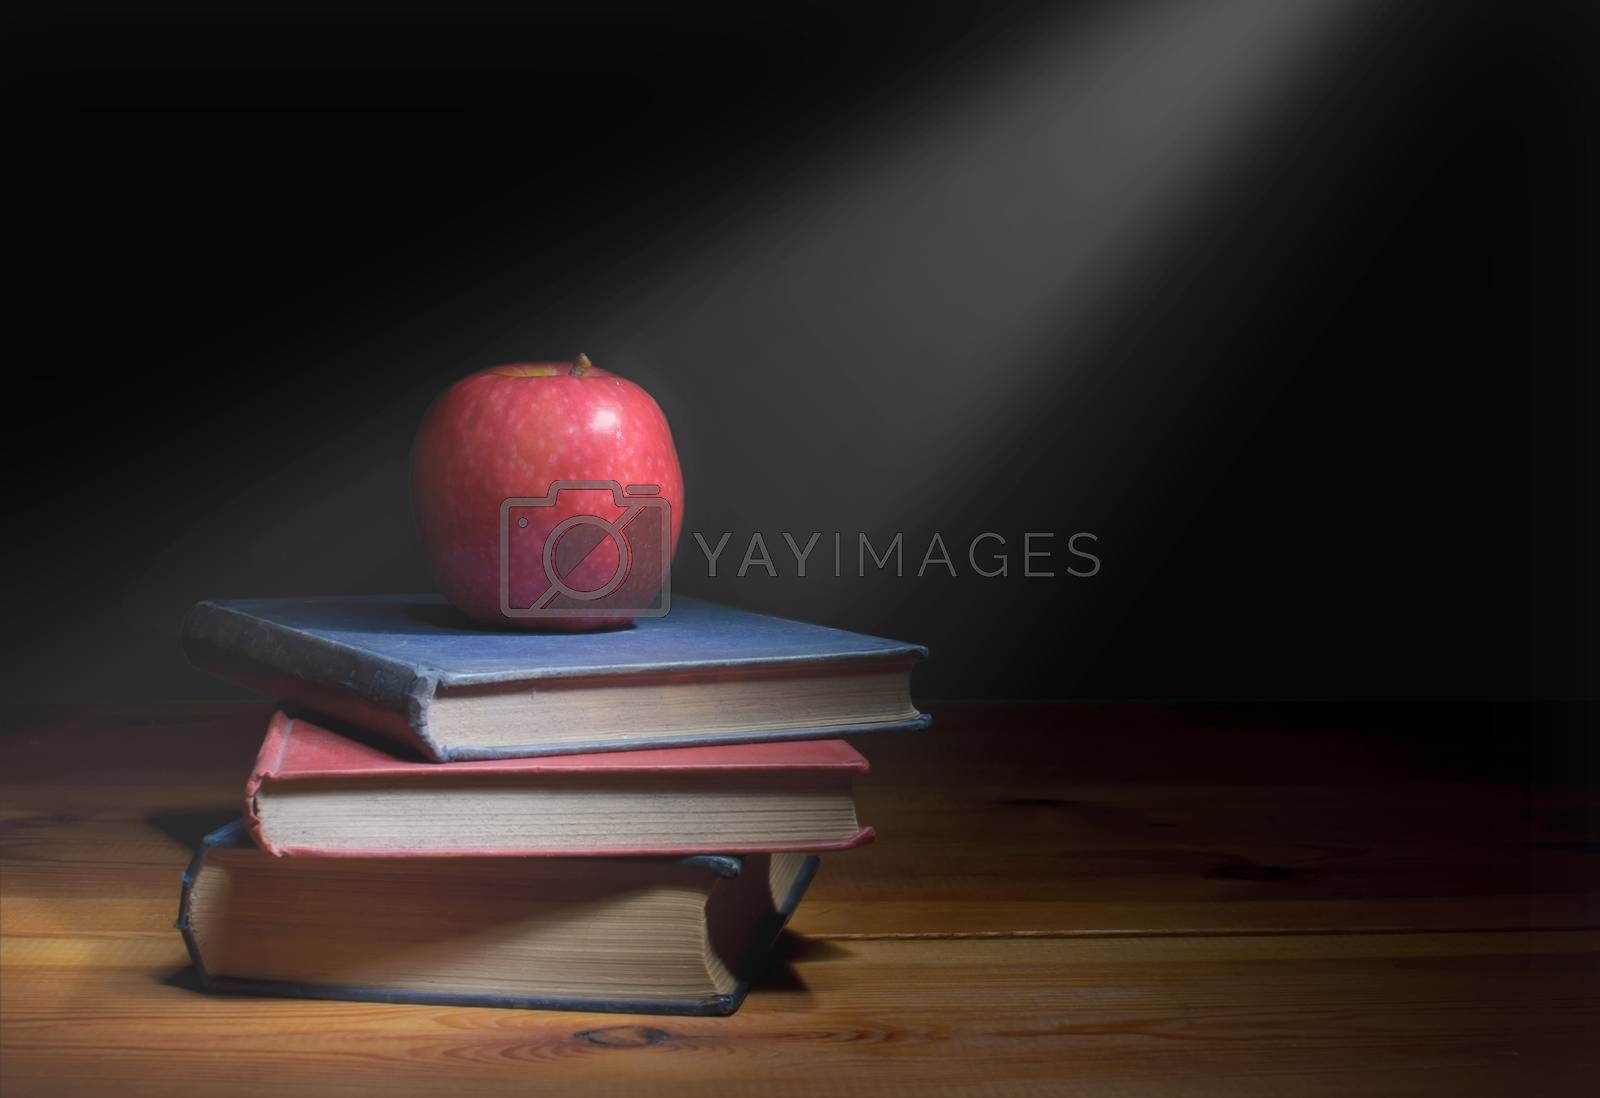 Ray of light shining down on a stack of books with a red apple